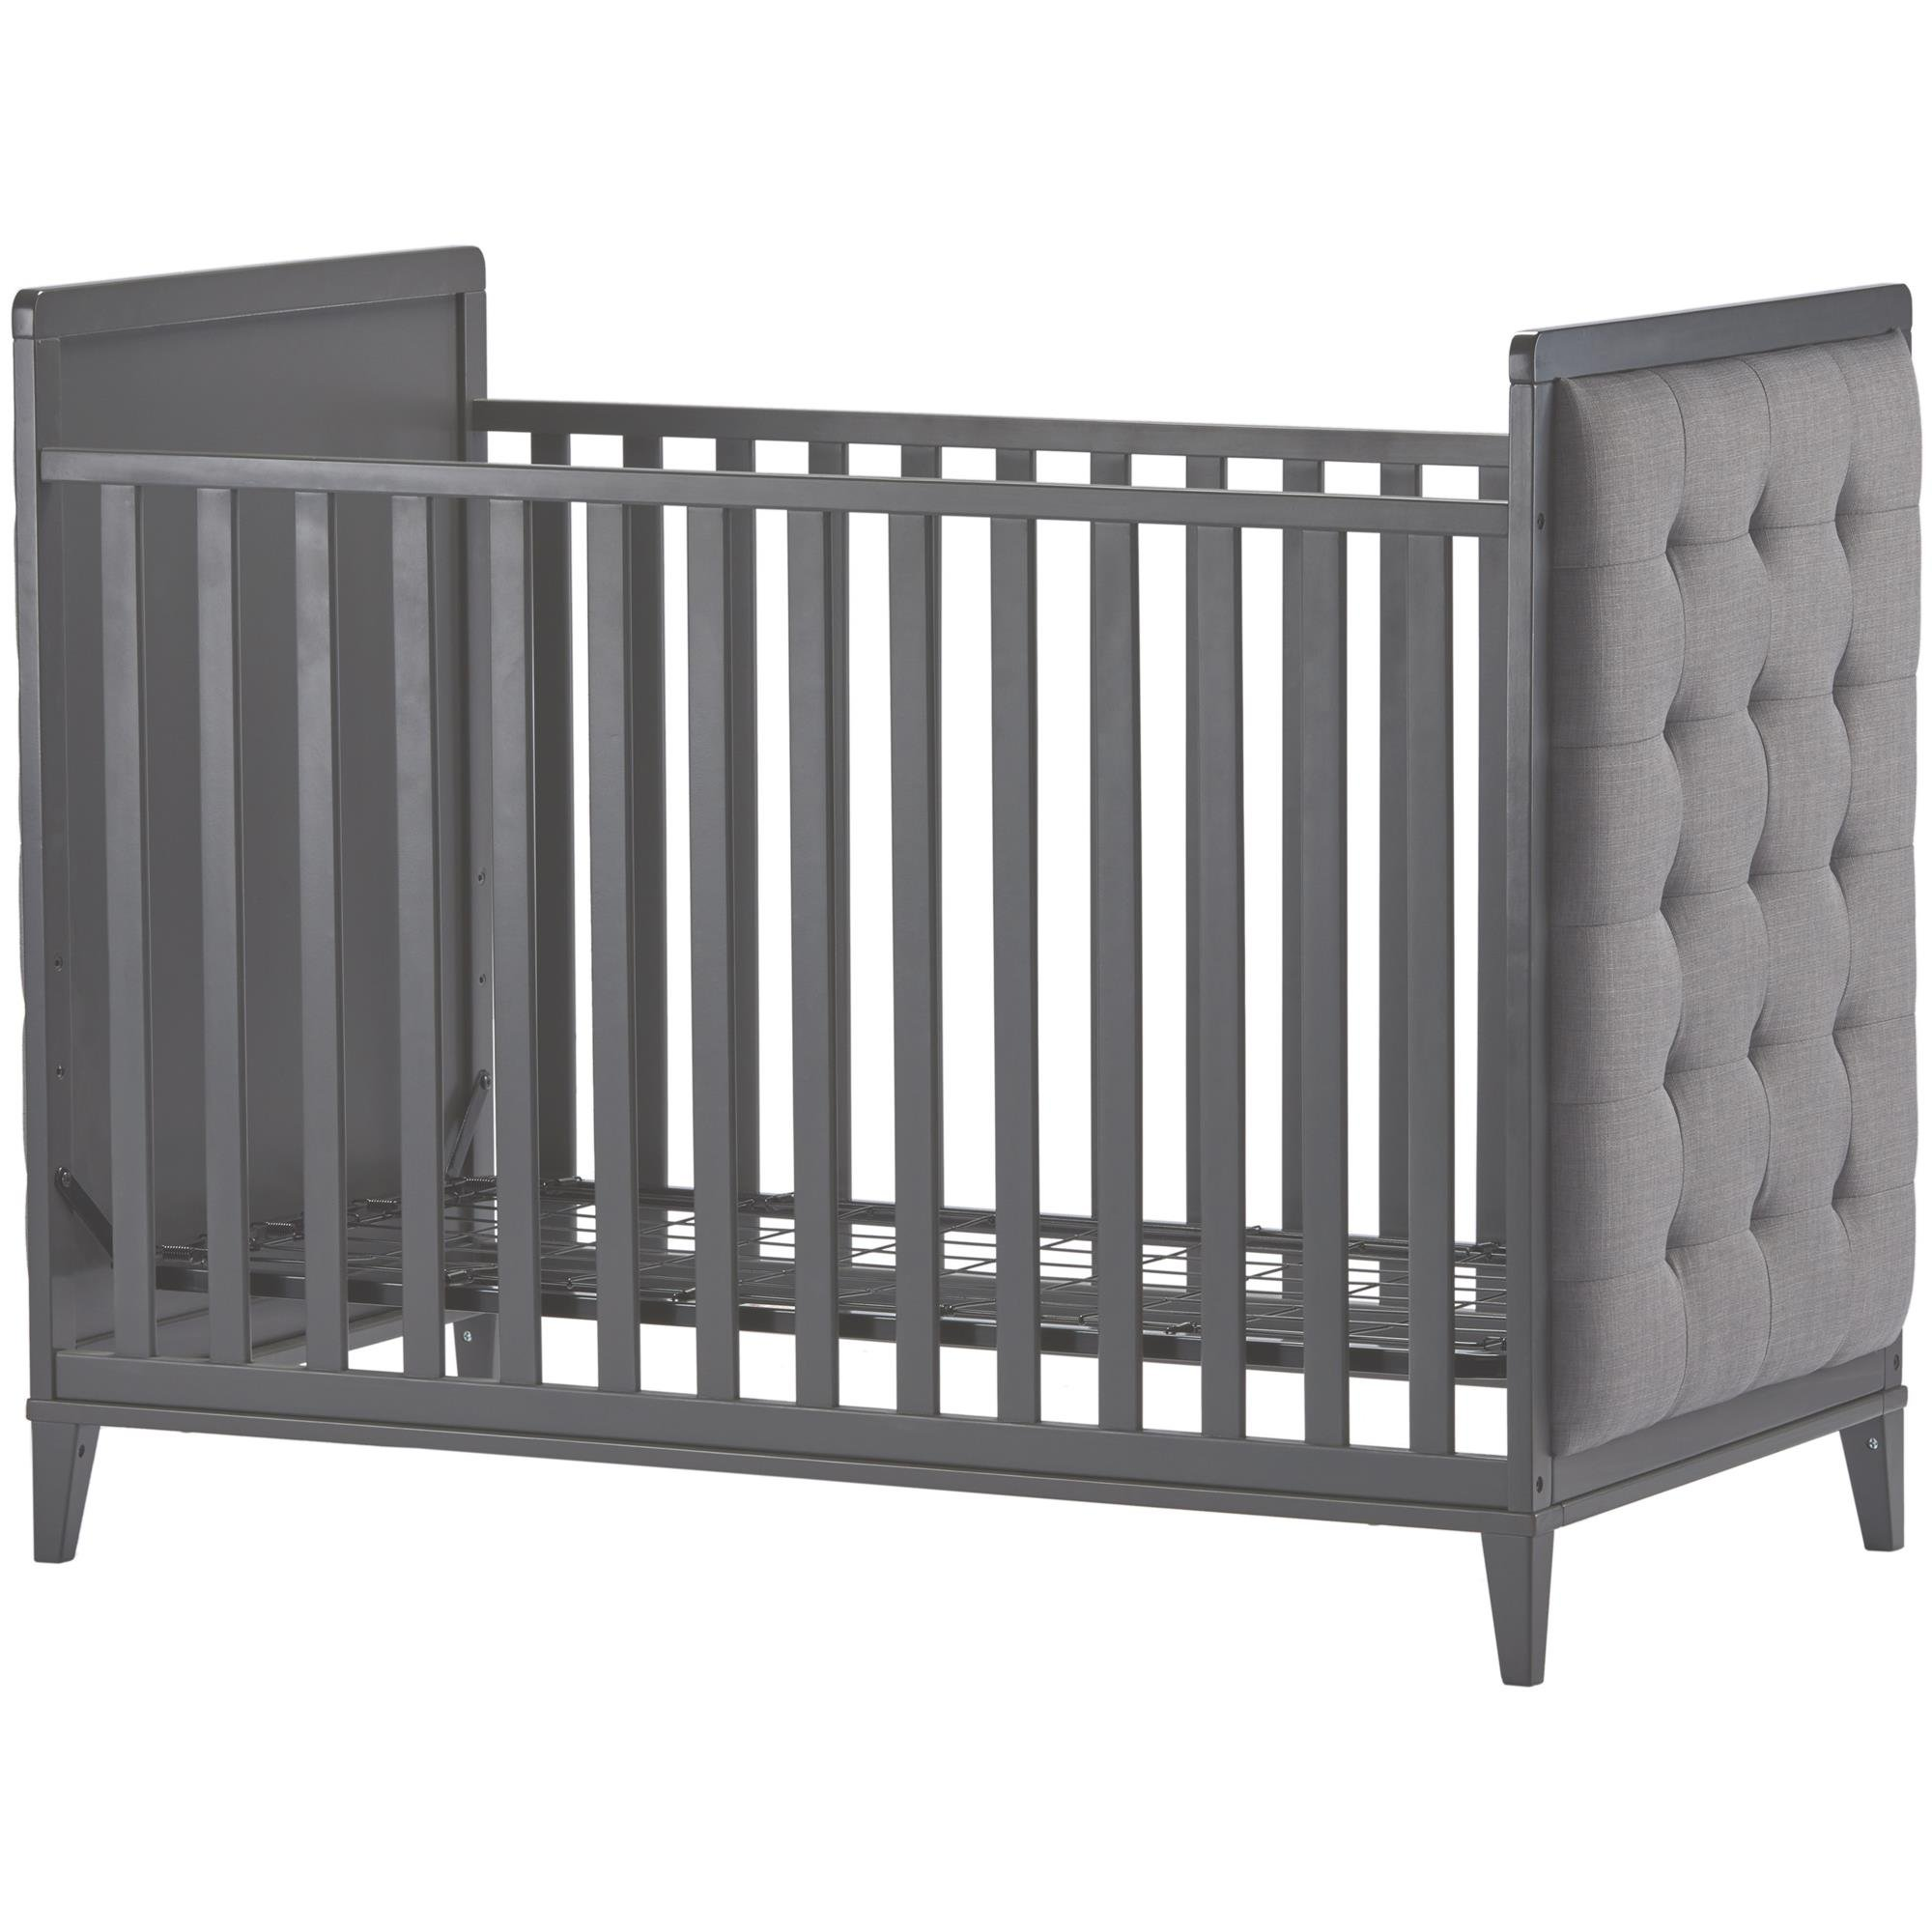 Little Seeds Monarch Hill Avery Upholstered Crib, Gray